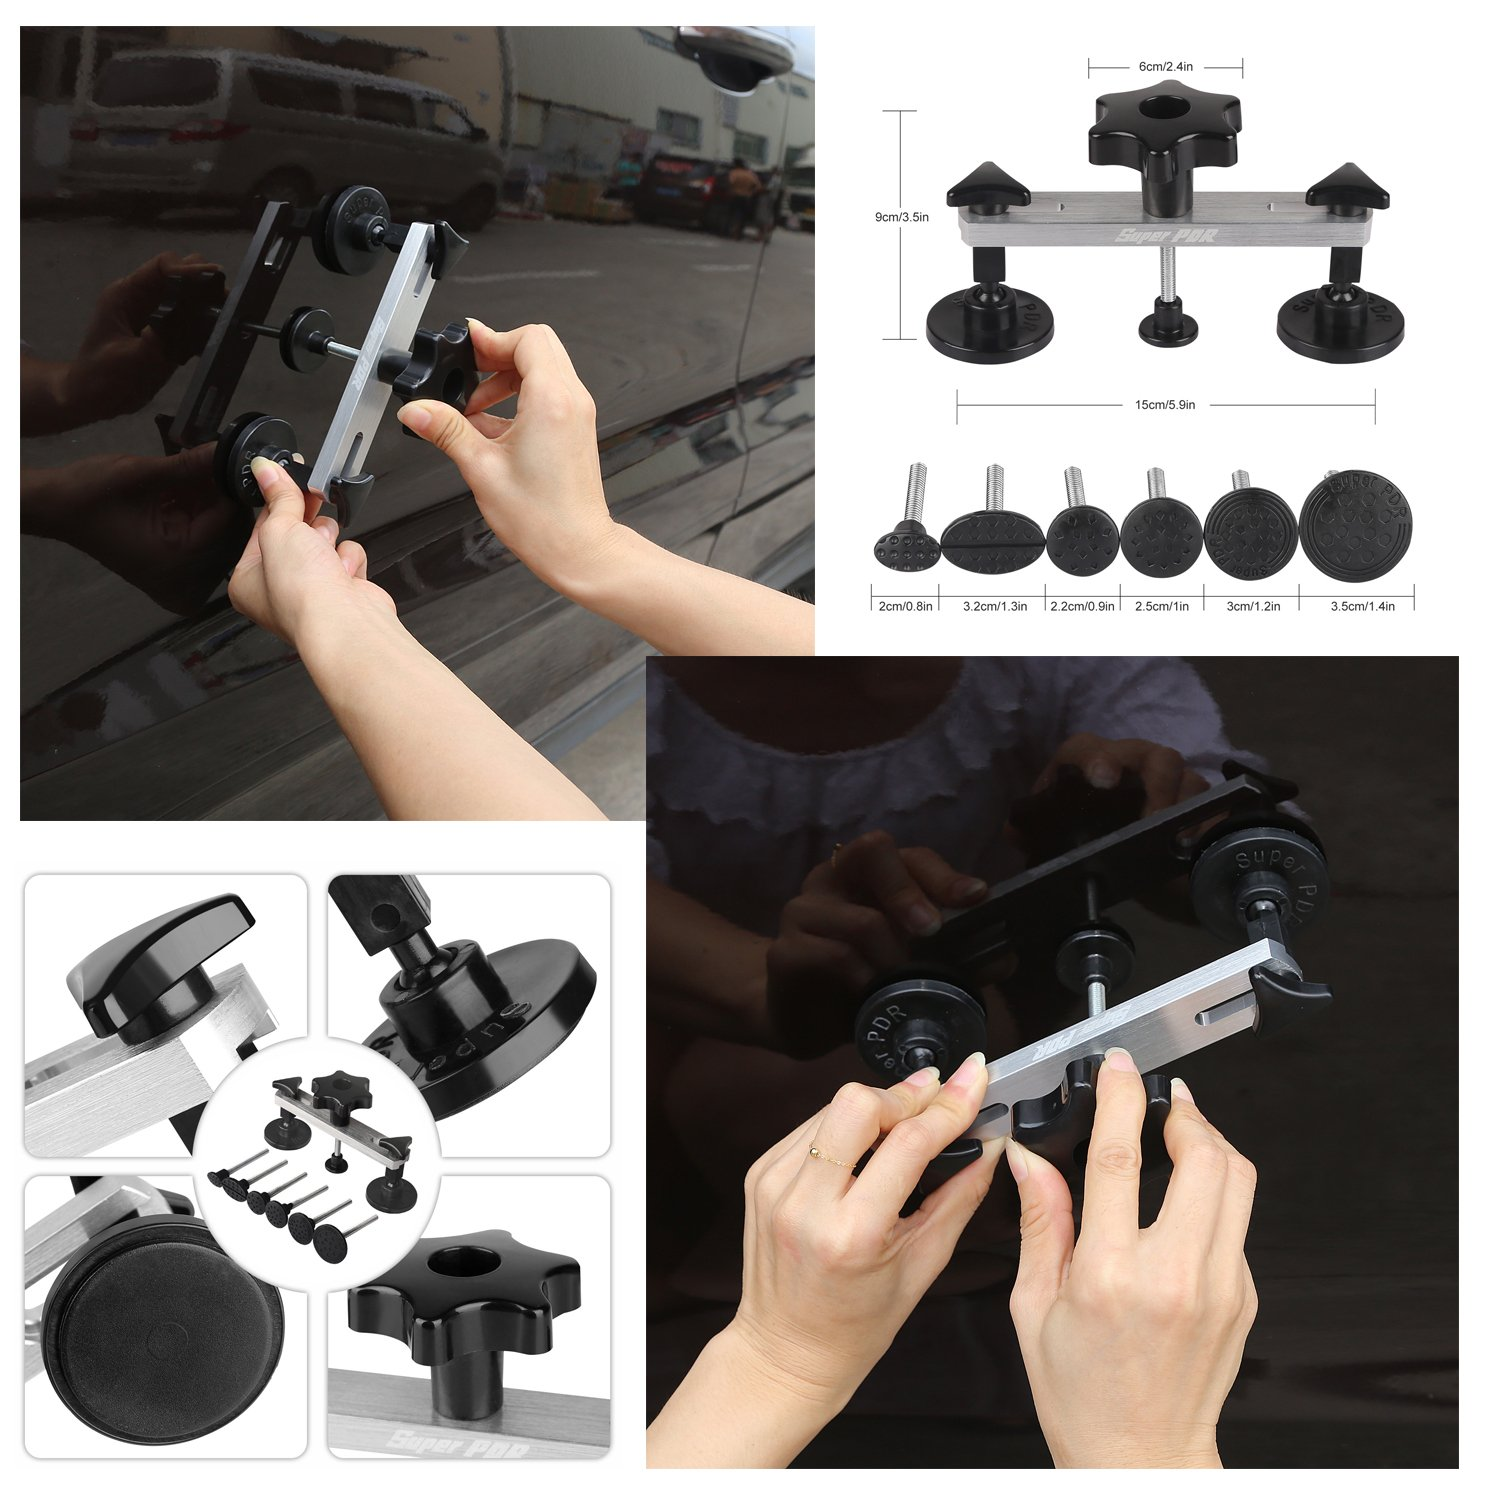 Fly5D 22Pcs Automotive No-scratch Paintless Dent Repair Kit Upgraded Dent Removal Bridge Puller kit by Fly5D (Image #2)